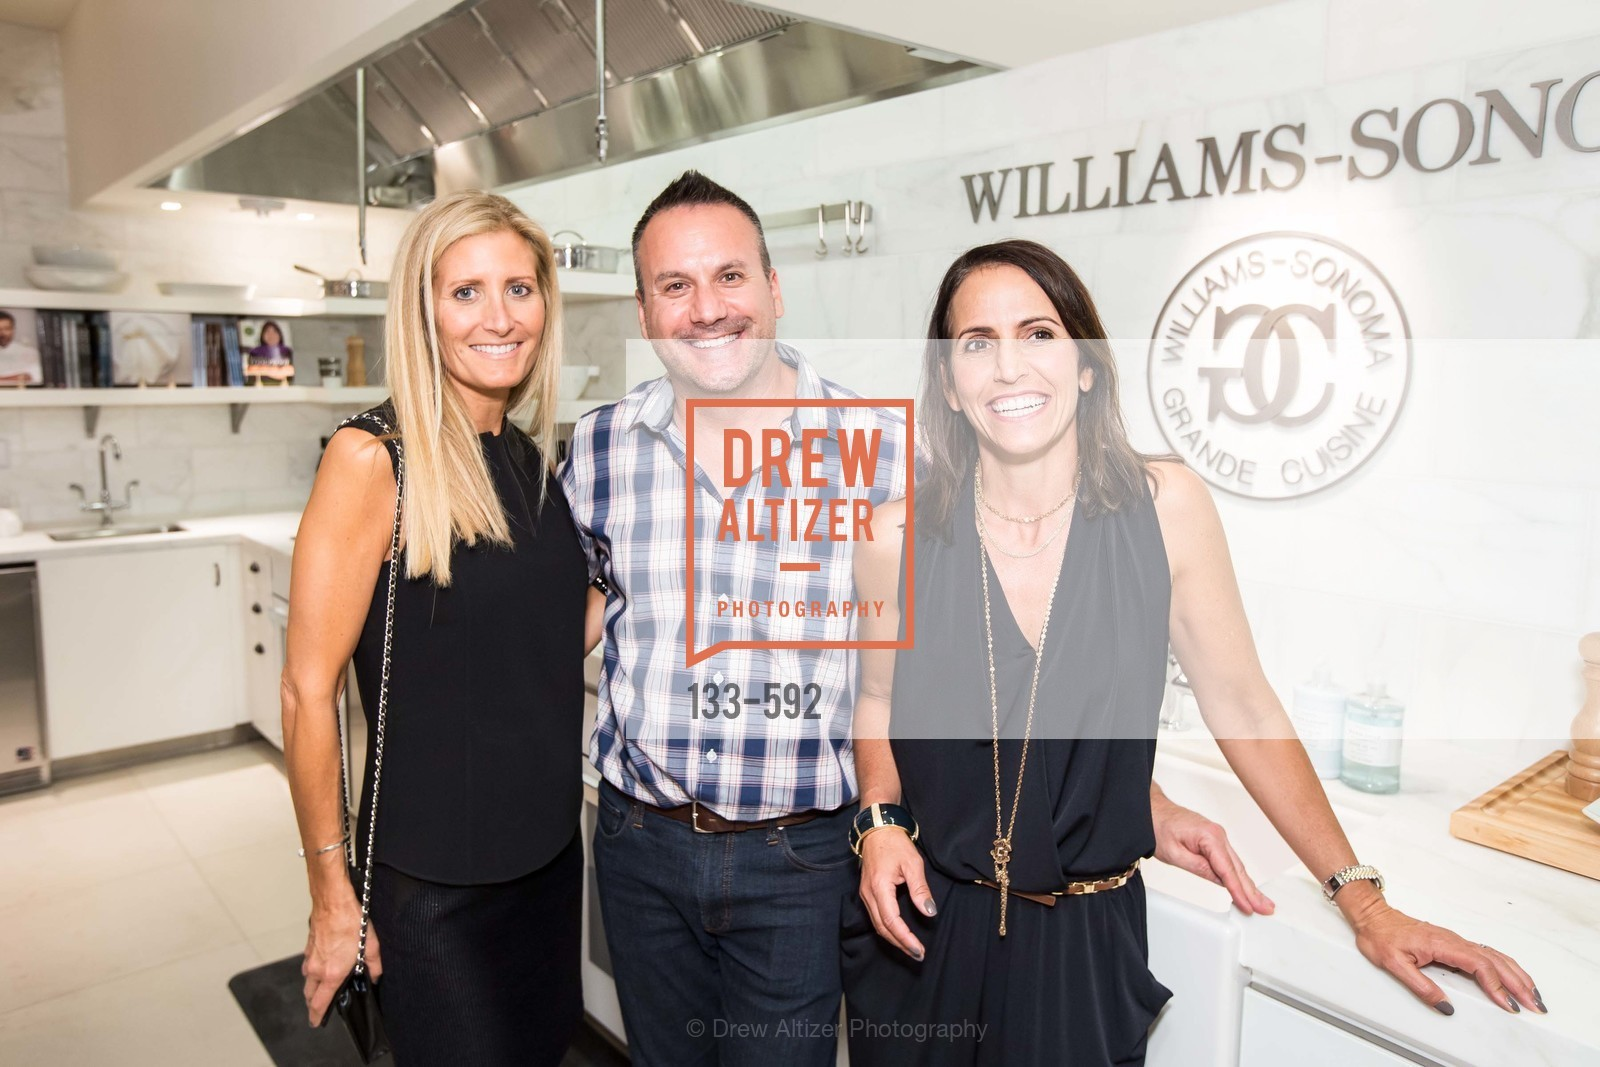 Carol Sebastiani, Carmine Fiore, Lisa Dierking, WILLIAMS-SONOMA Cochon BBQ Celebration, US, October 2nd, 2014,Drew Altizer, Drew Altizer Photography, full-service agency, private events, San Francisco photographer, photographer california